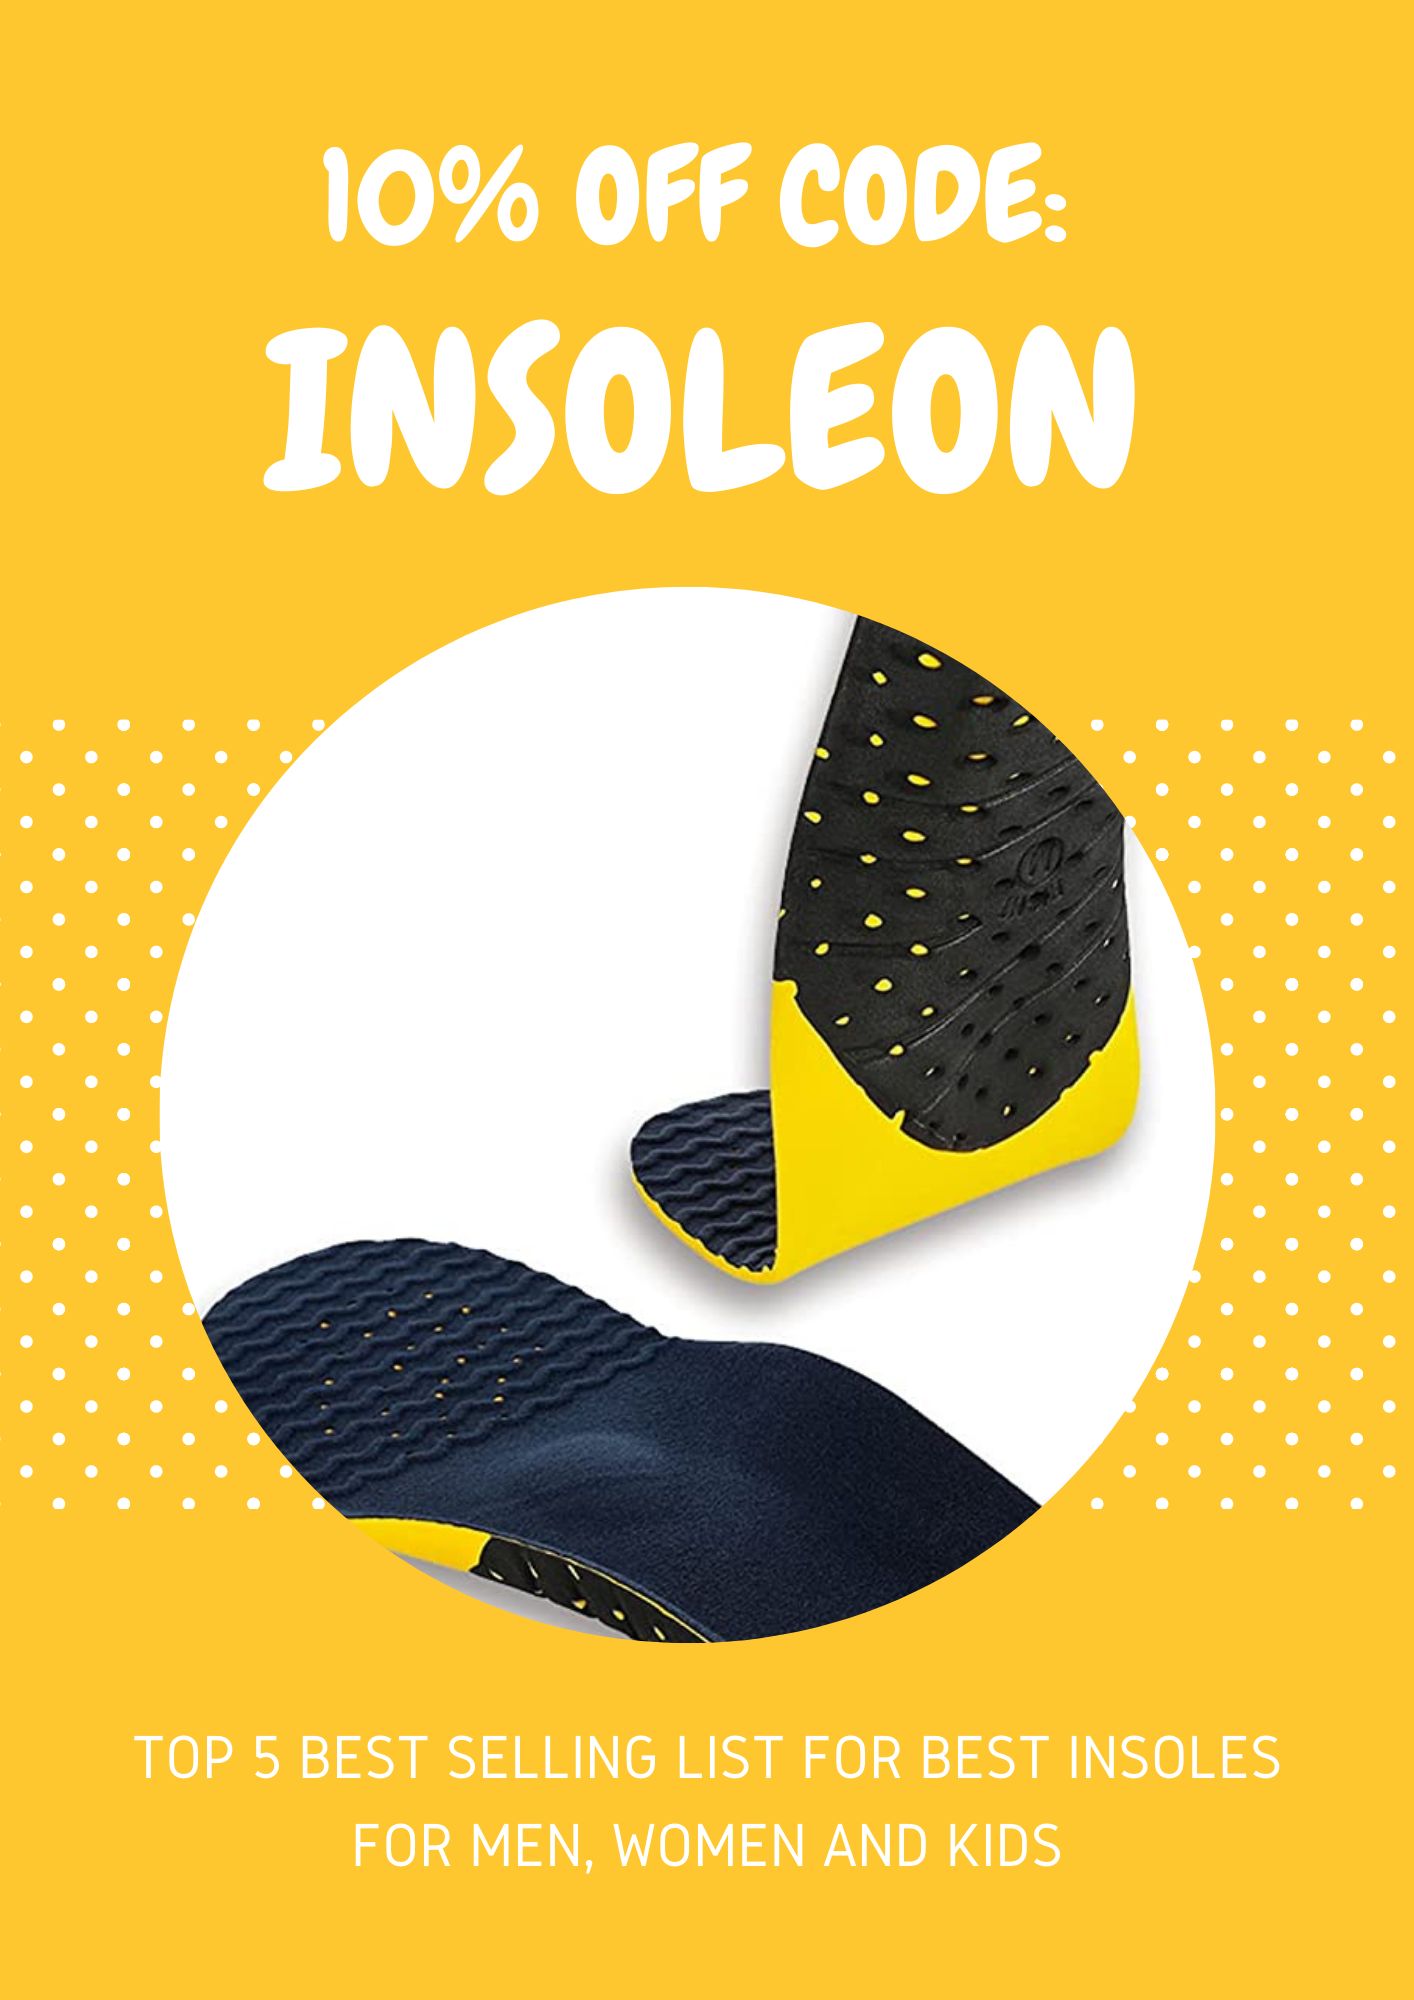 Top 5 Best Selling List for Best Insoles for Men, Women and Kids